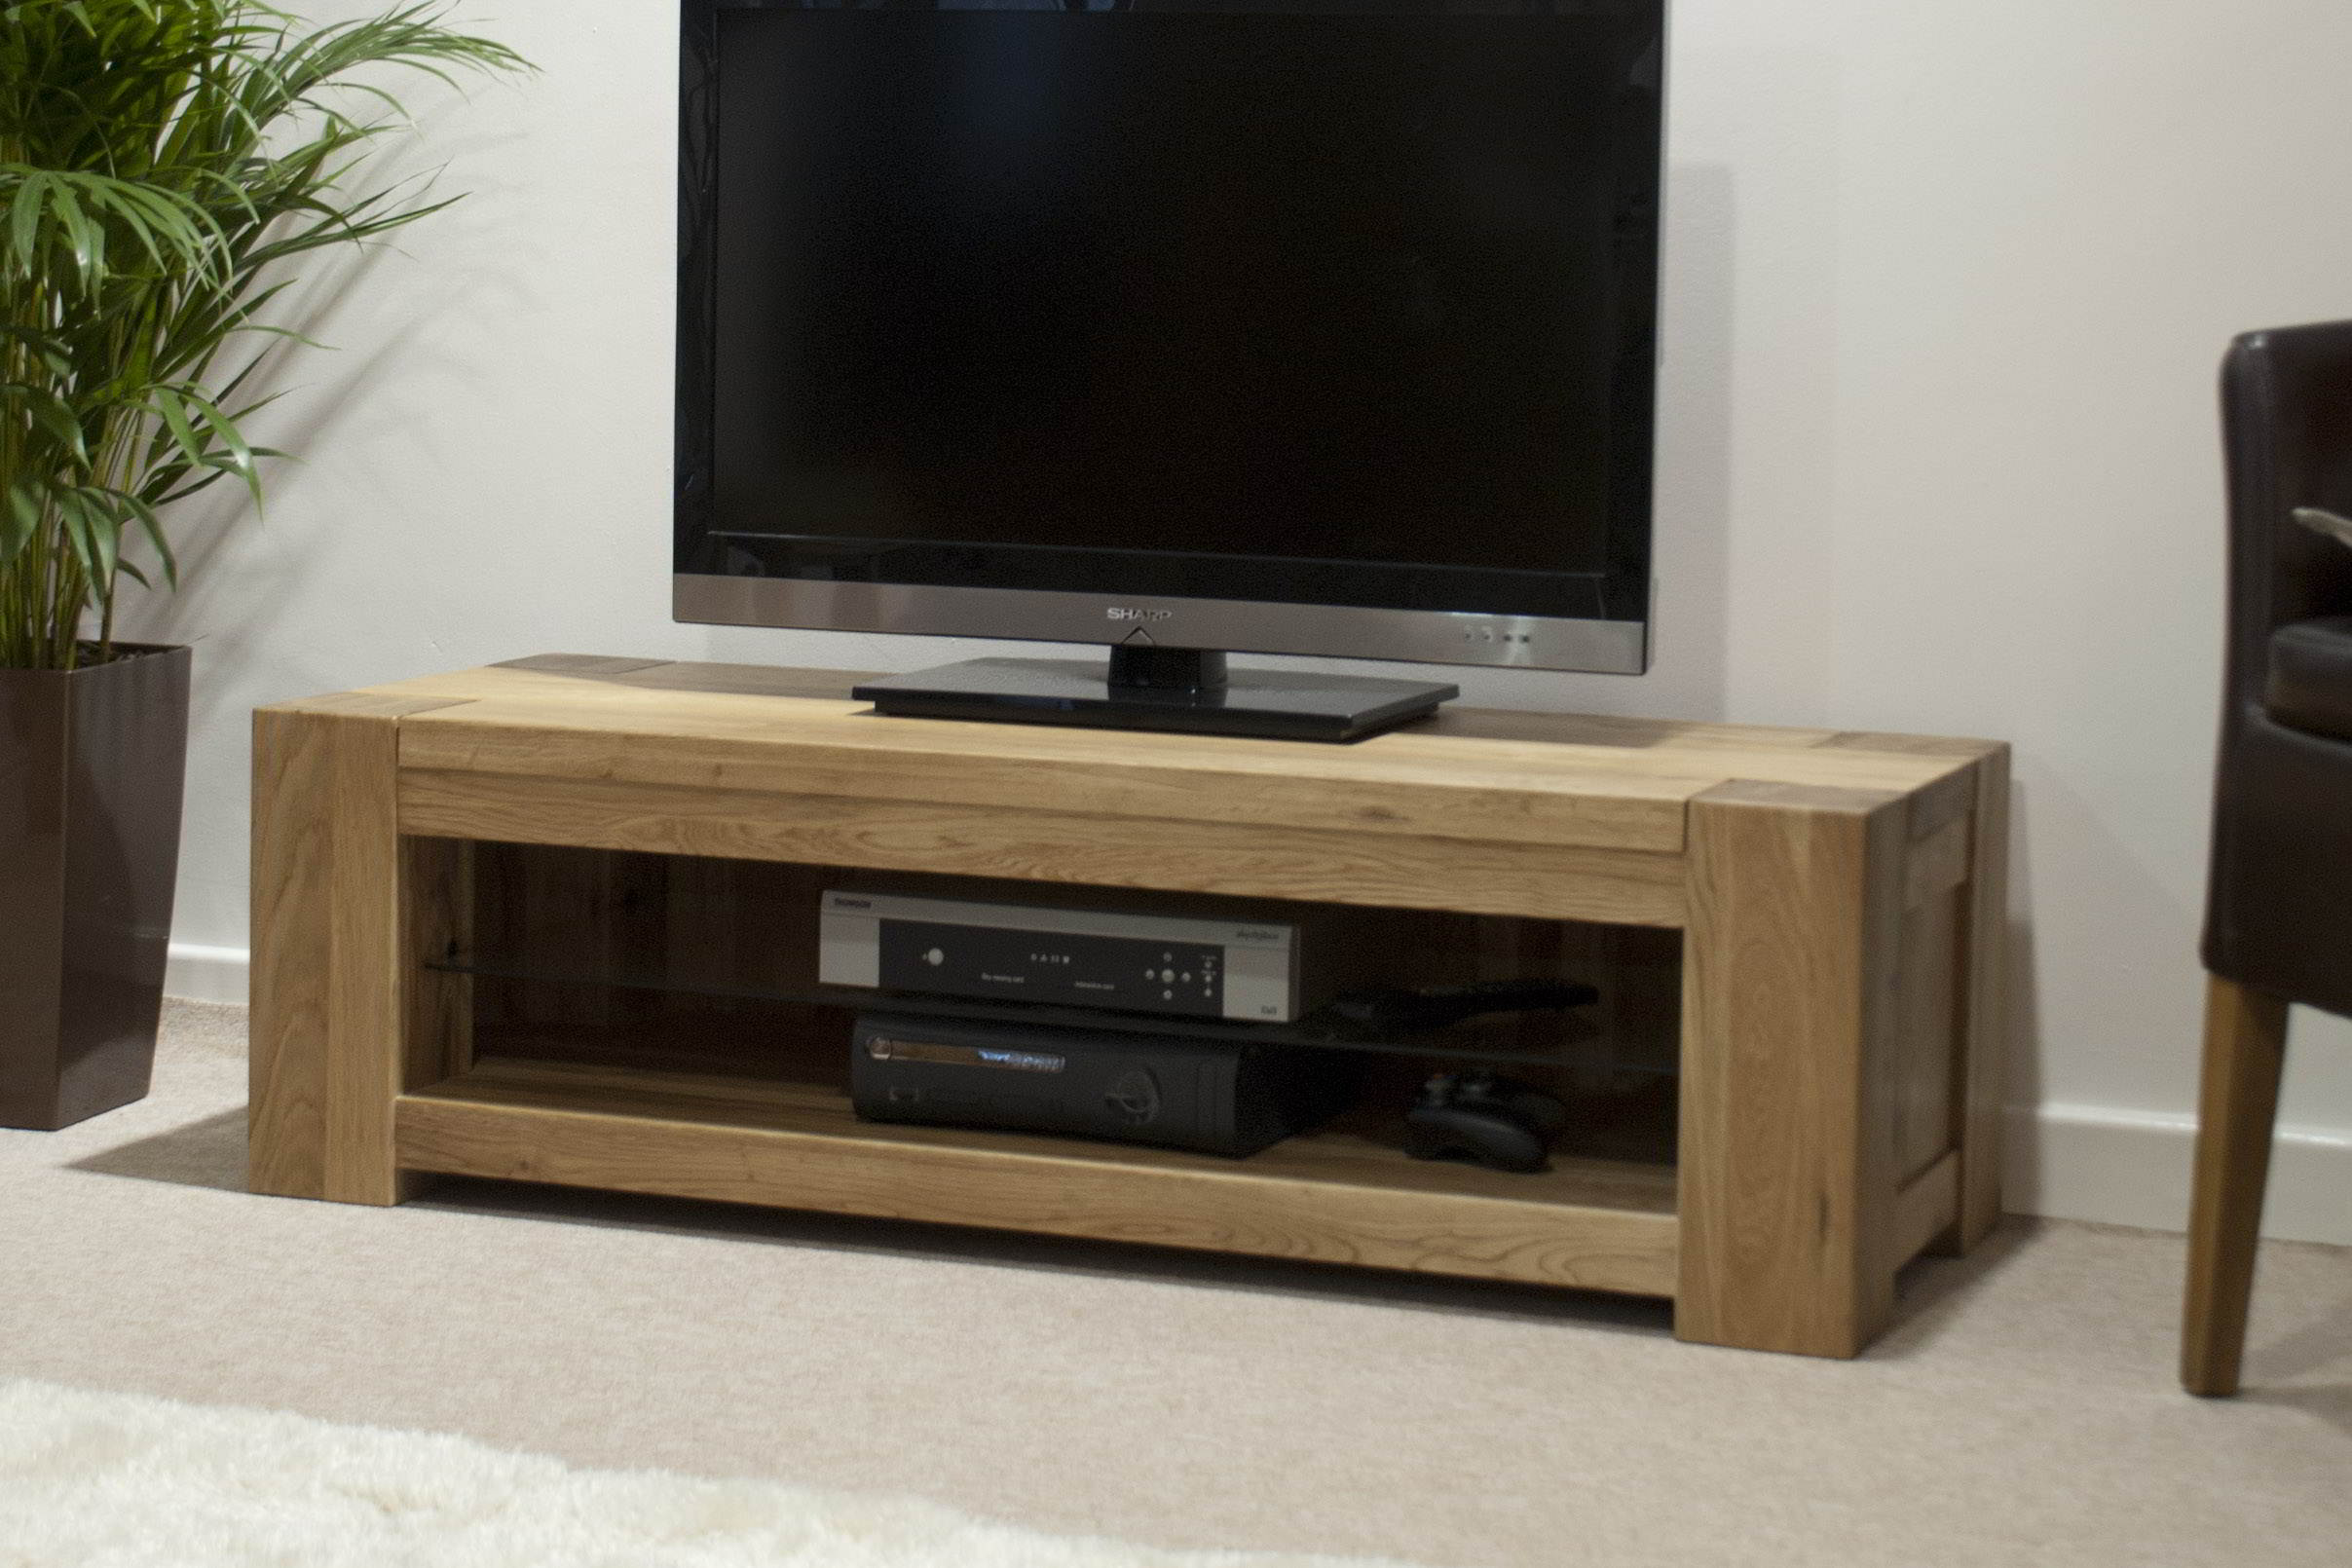 padova solid oak furniture plasma television cabinet stand. Black Bedroom Furniture Sets. Home Design Ideas